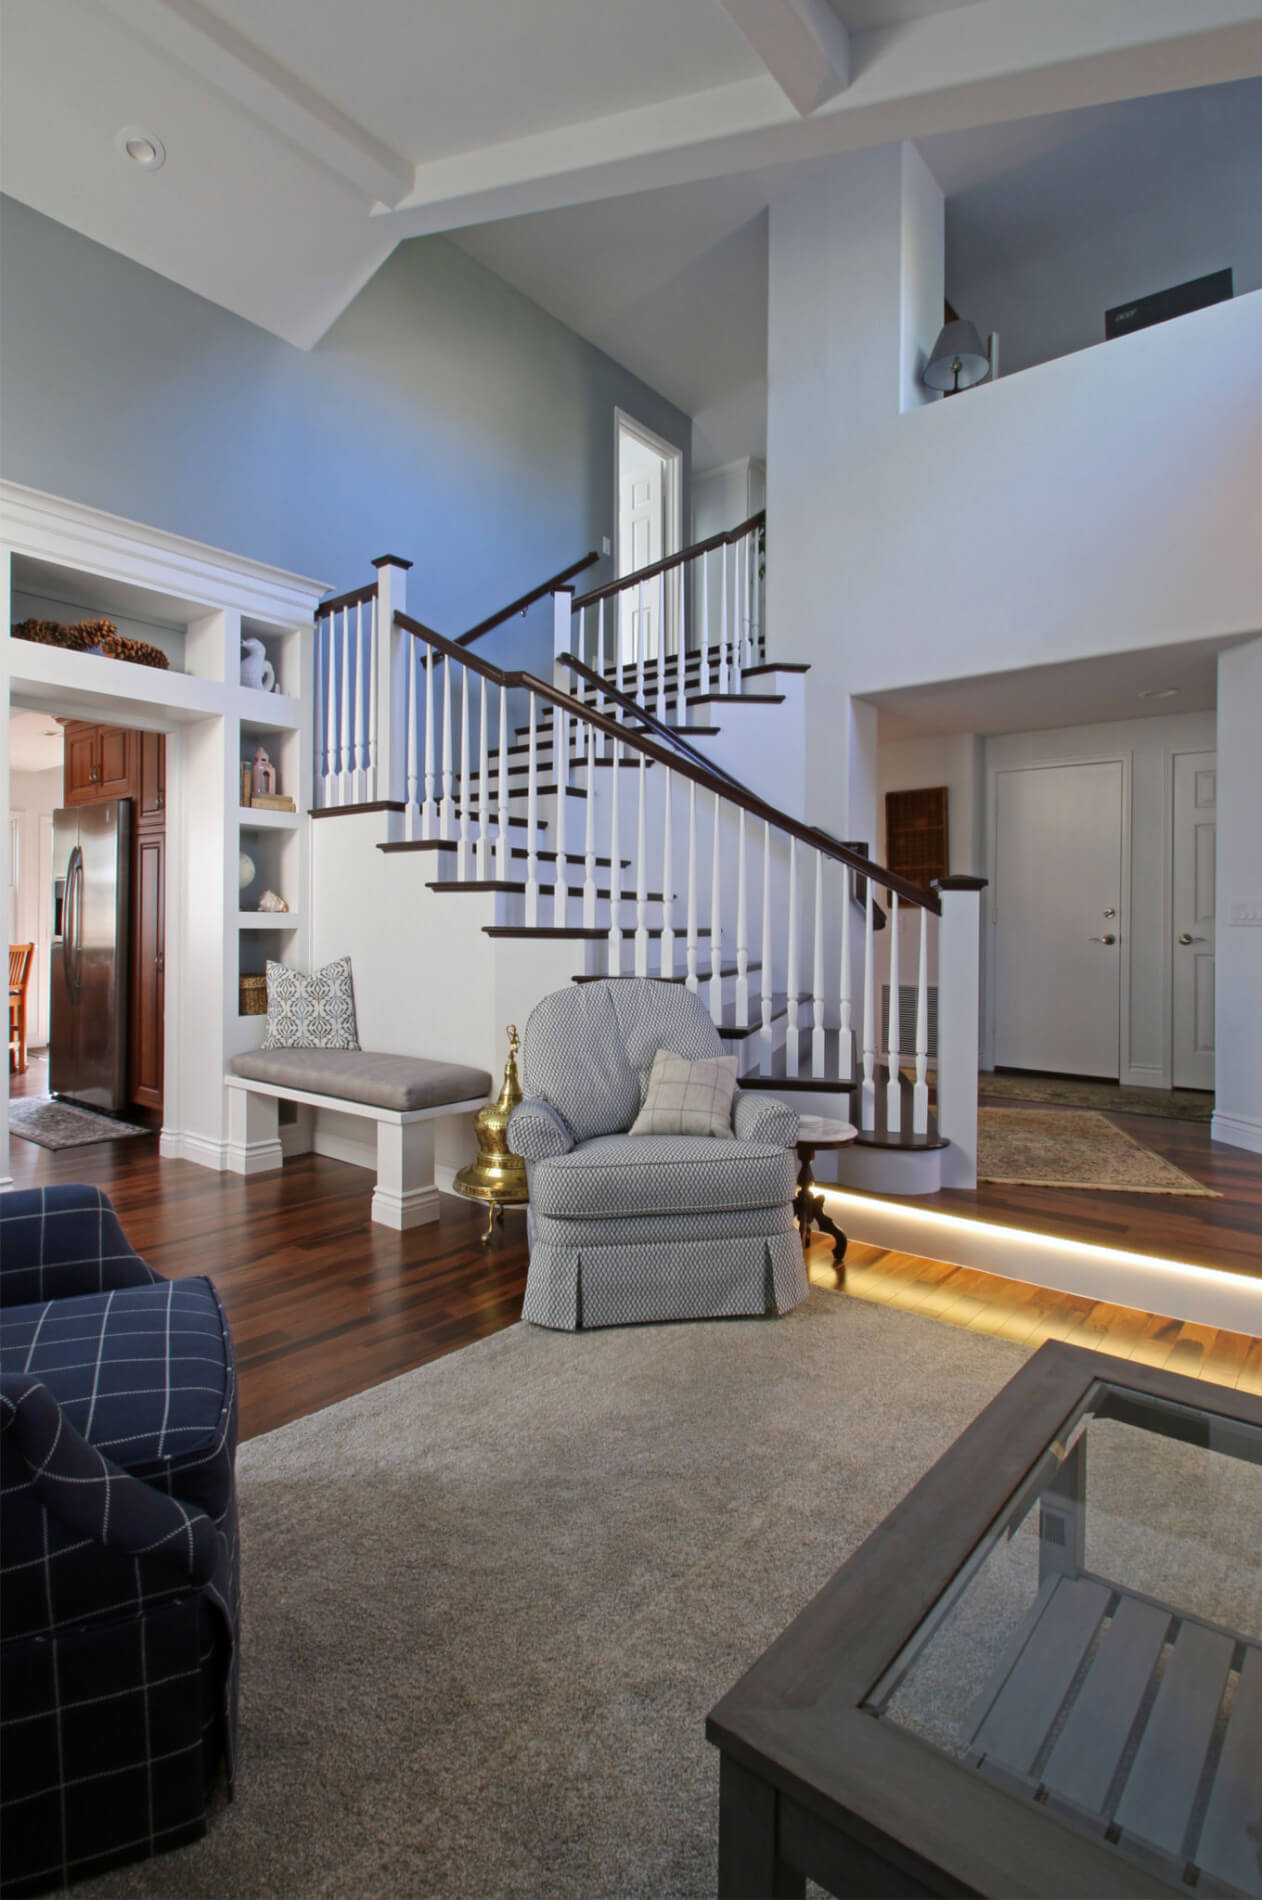 Grand Staircase Remodeled in Newport Beach California, Large Entry Way Staircase Remodel